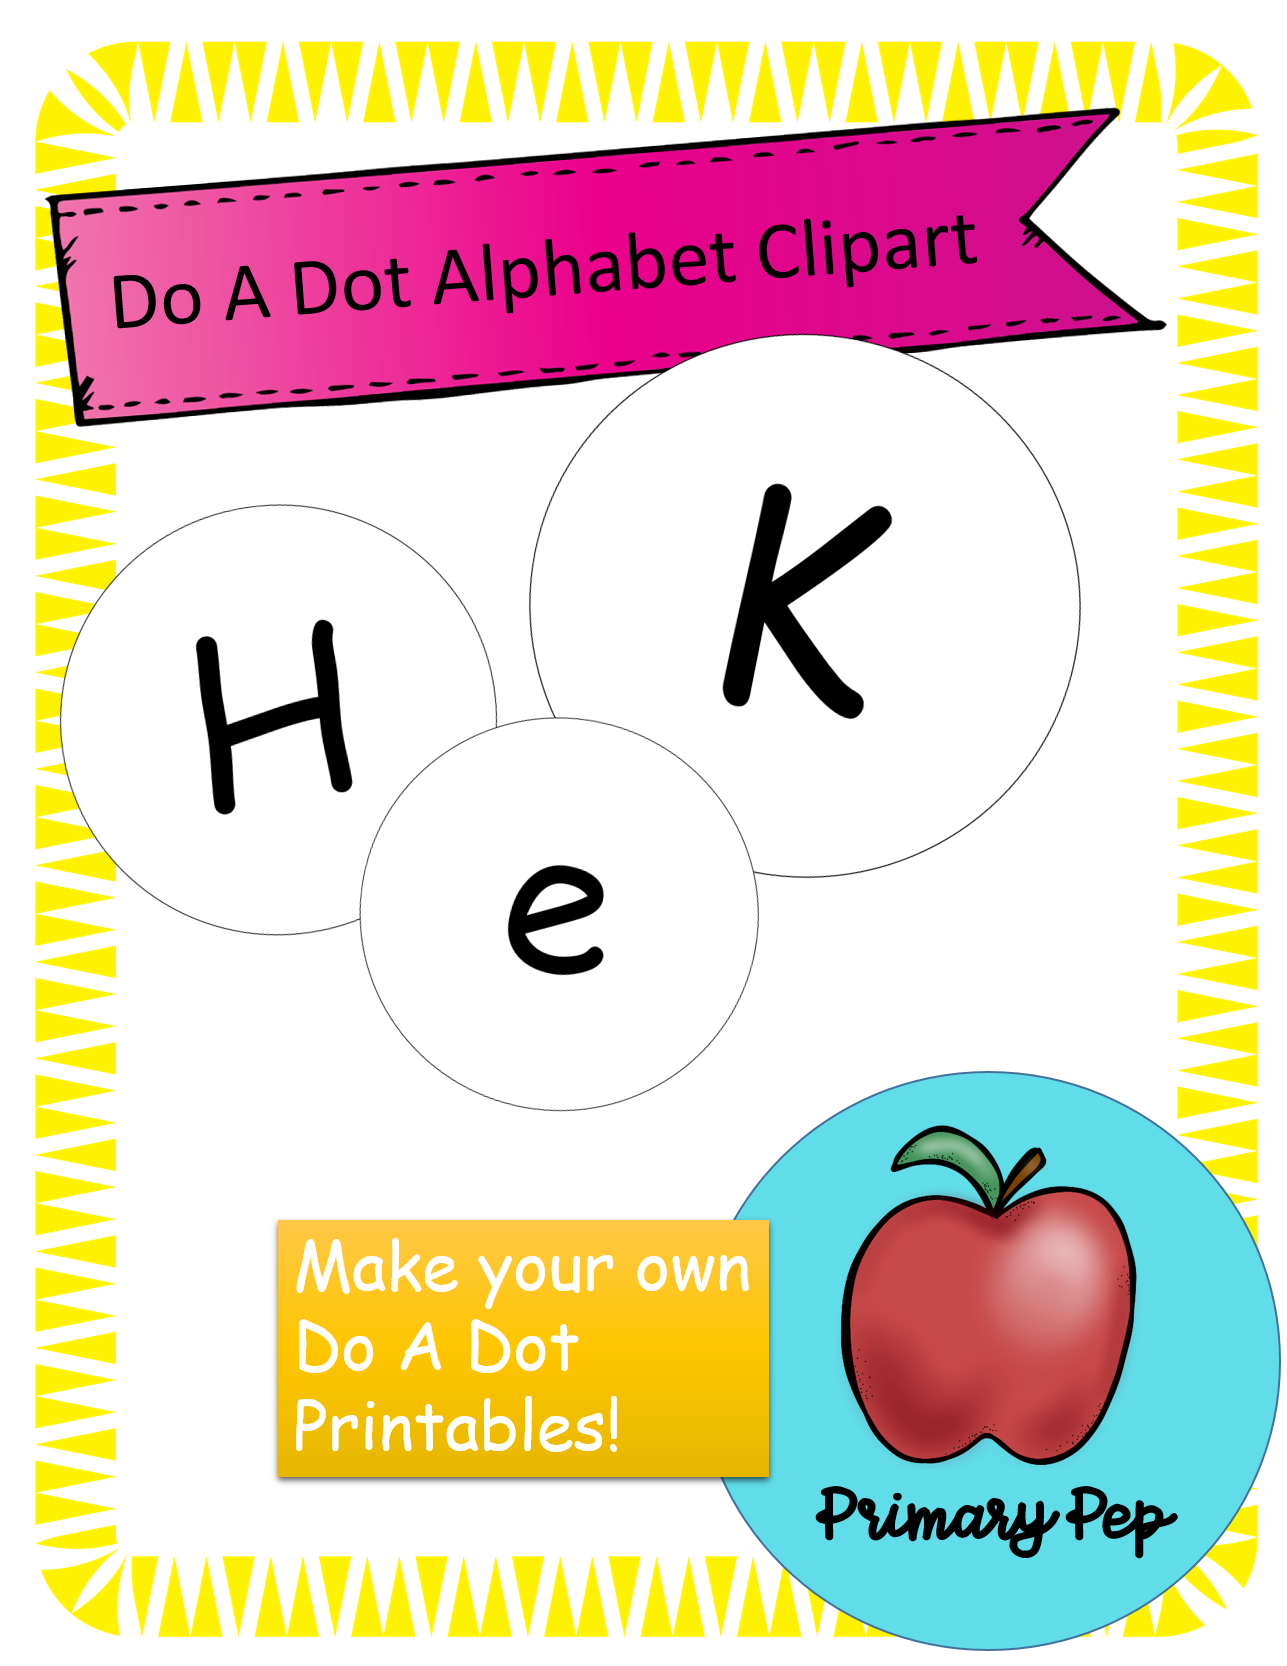 Do A Dot Alphabet Clipart